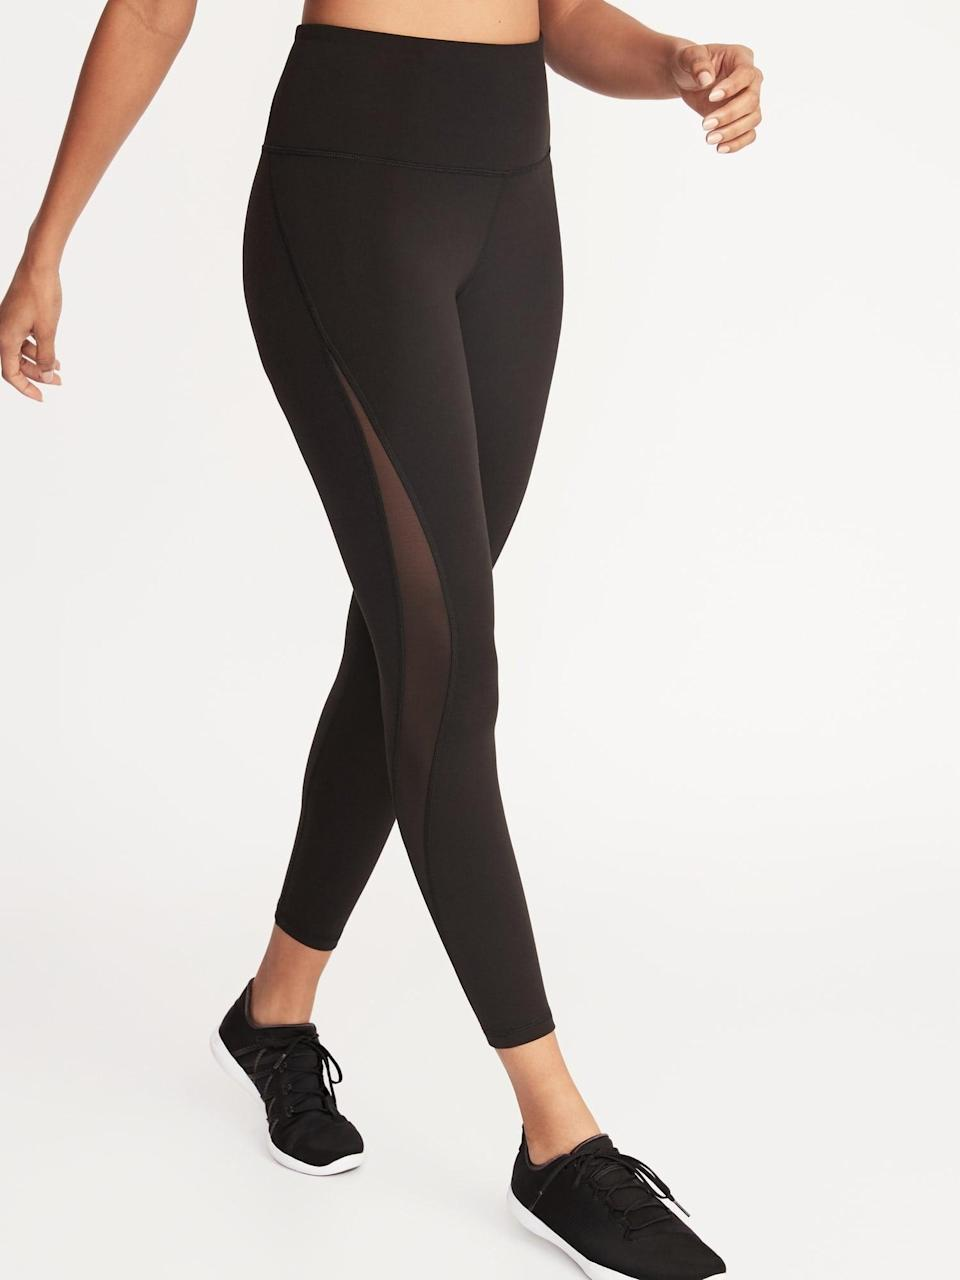 """<p>These <a href=""""https://www.popsugar.com/buy/Old-Navy-High-Waisted-Elevate-78-Length-Mesh-Splice-Compression-Leggings-546342?p_name=Old%20Navy%20High-Waisted%20Elevate%207%2F8-Length%20Mesh-Splice%20Compression%20Leggings&retailer=oldnavy.gap.com&pid=546342&price=22&evar1=fit%3Auk&evar9=47431653&evar98=https%3A%2F%2Fwww.popsugar.com%2Ffitness%2Fphoto-gallery%2F47431653%2Fimage%2F47431676%2FOld-Navy-High-Waisted-Elevate-78-Length-Mesh-Splice-Compression-Leggings&list1=shopping%2Cold%20navy%2Cworkout%20clothes%2Cleggings%2Cproduct%20reviews&prop13=api&pdata=1"""" class=""""link rapid-noclick-resp"""" rel=""""nofollow noopener"""" target=""""_blank"""" data-ylk=""""slk:Old Navy High-Waisted Elevate 7/8-Length Mesh-Splice Compression Leggings"""">Old Navy High-Waisted Elevate 7/8-Length Mesh-Splice Compression Leggings</a> ($22, originally $34) are a fun take on a basic black legging.</p>"""